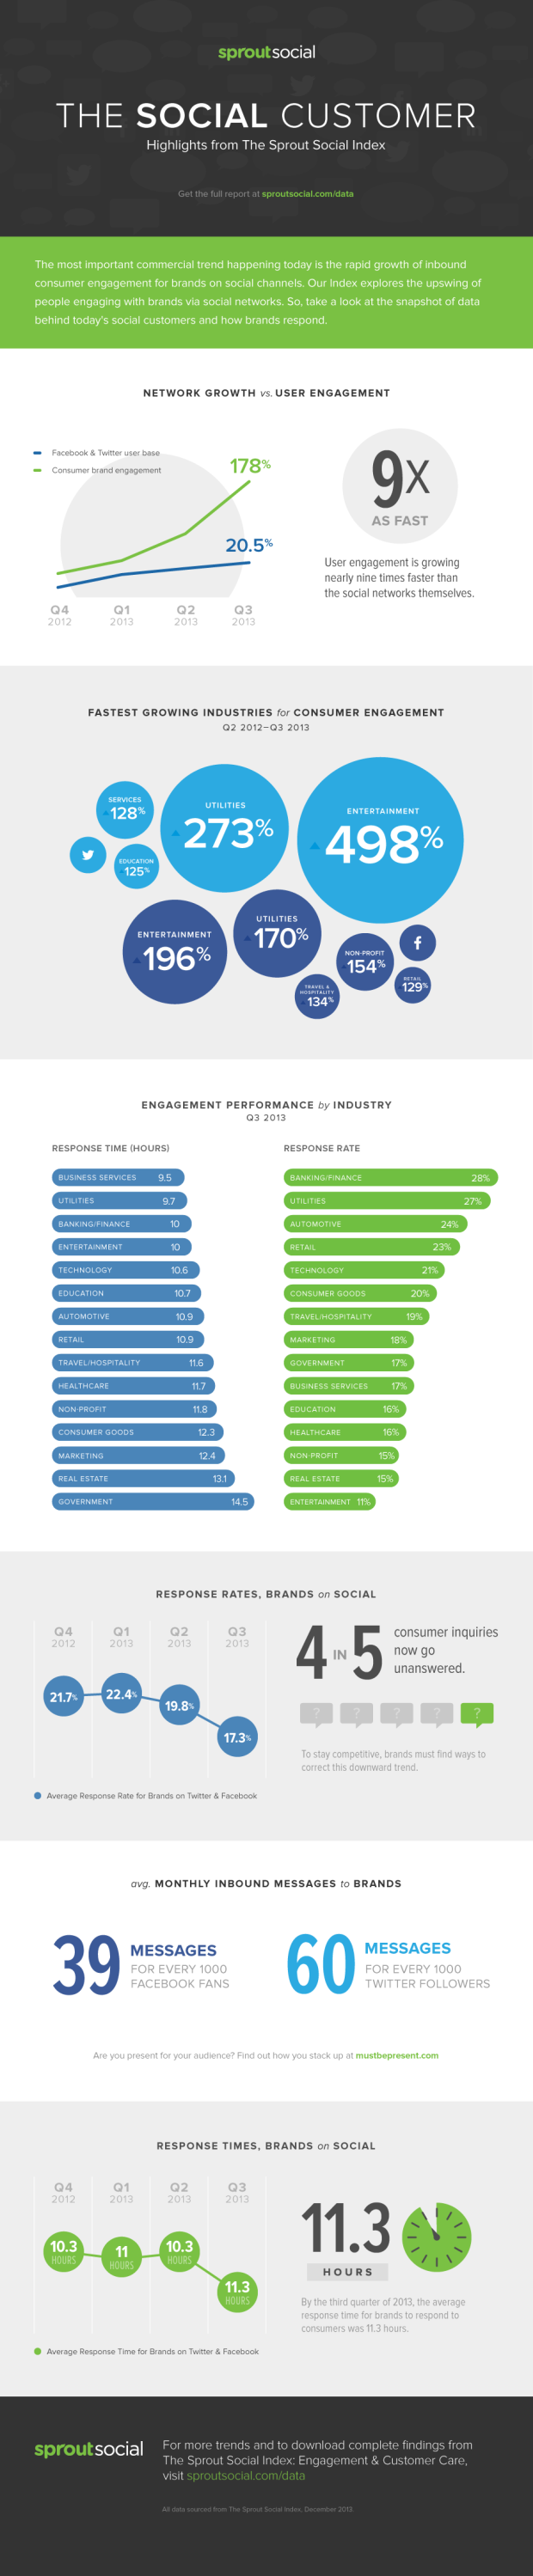 the-social-customer-infographic-sprout-social